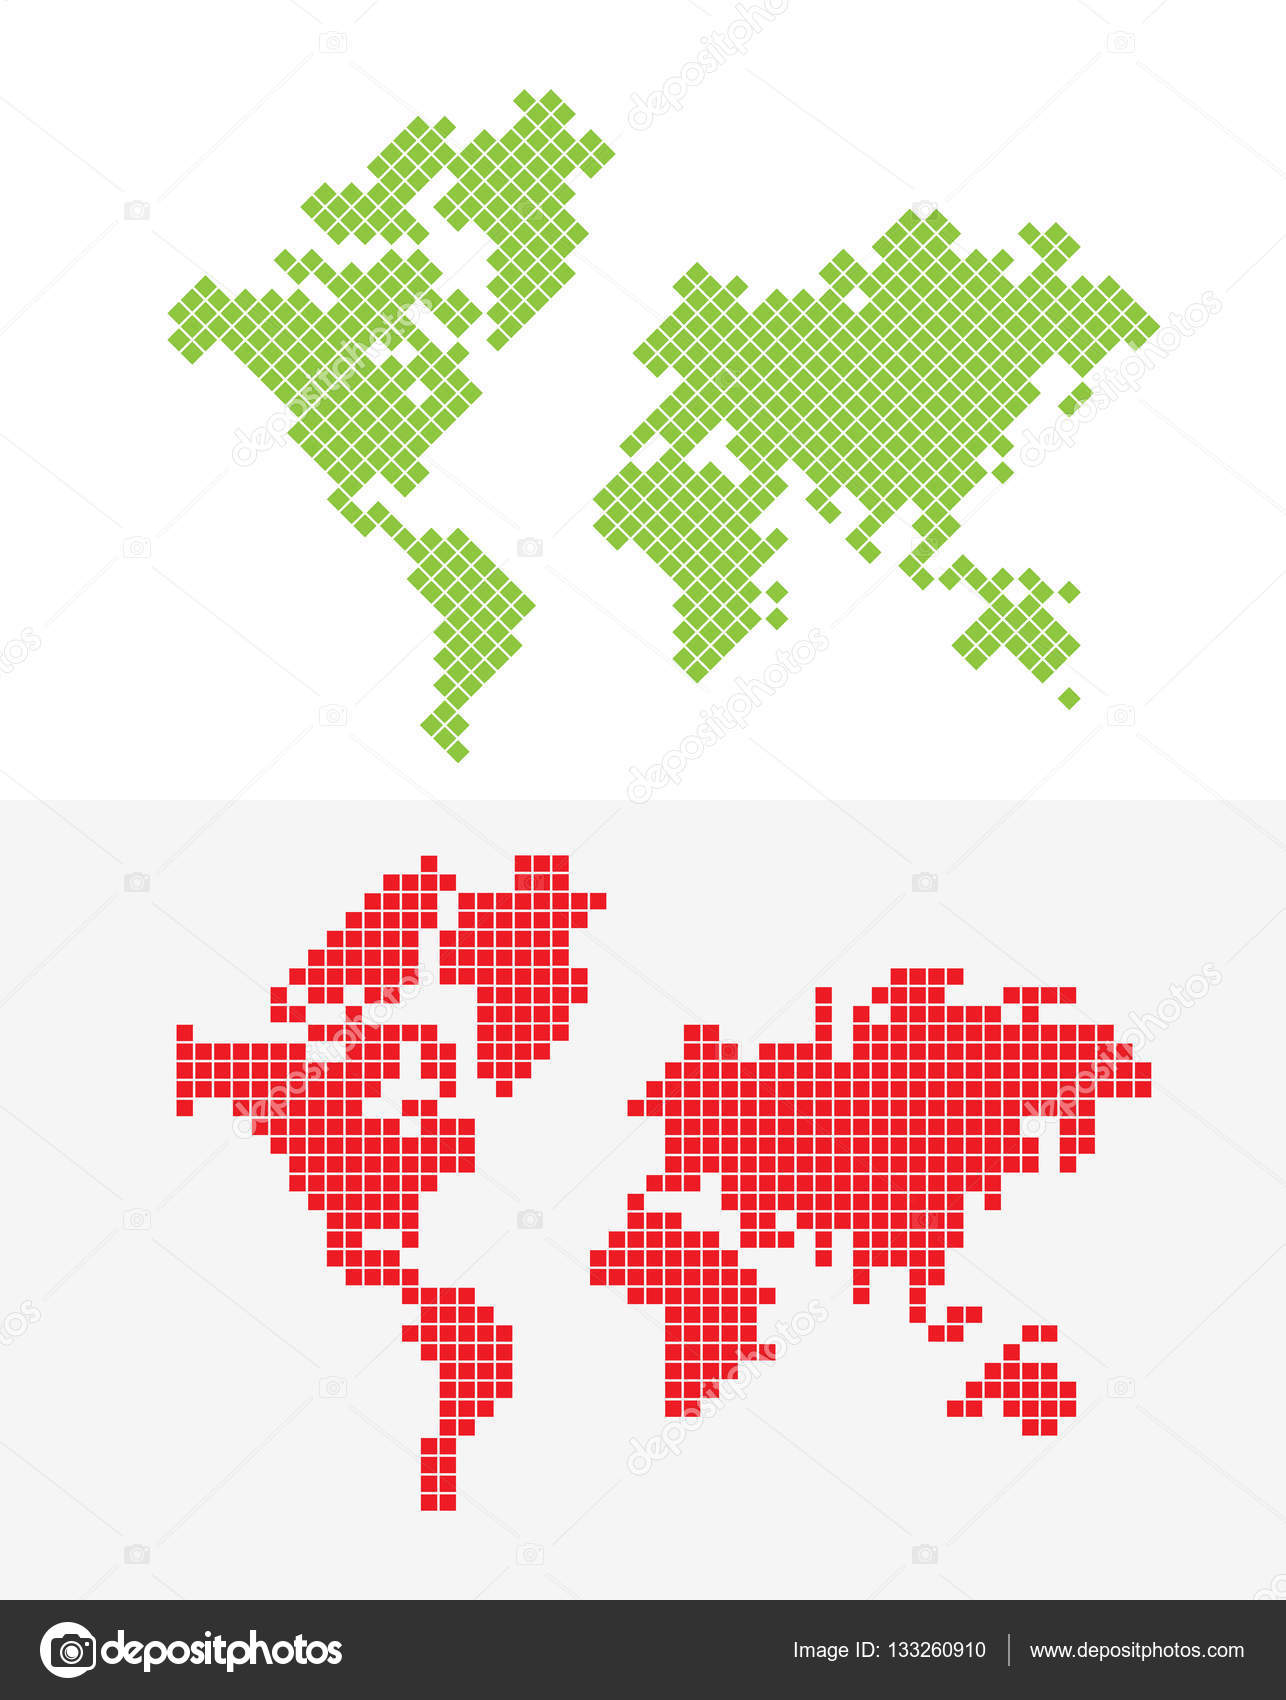 green and red world map stock vector sentavio 133260910